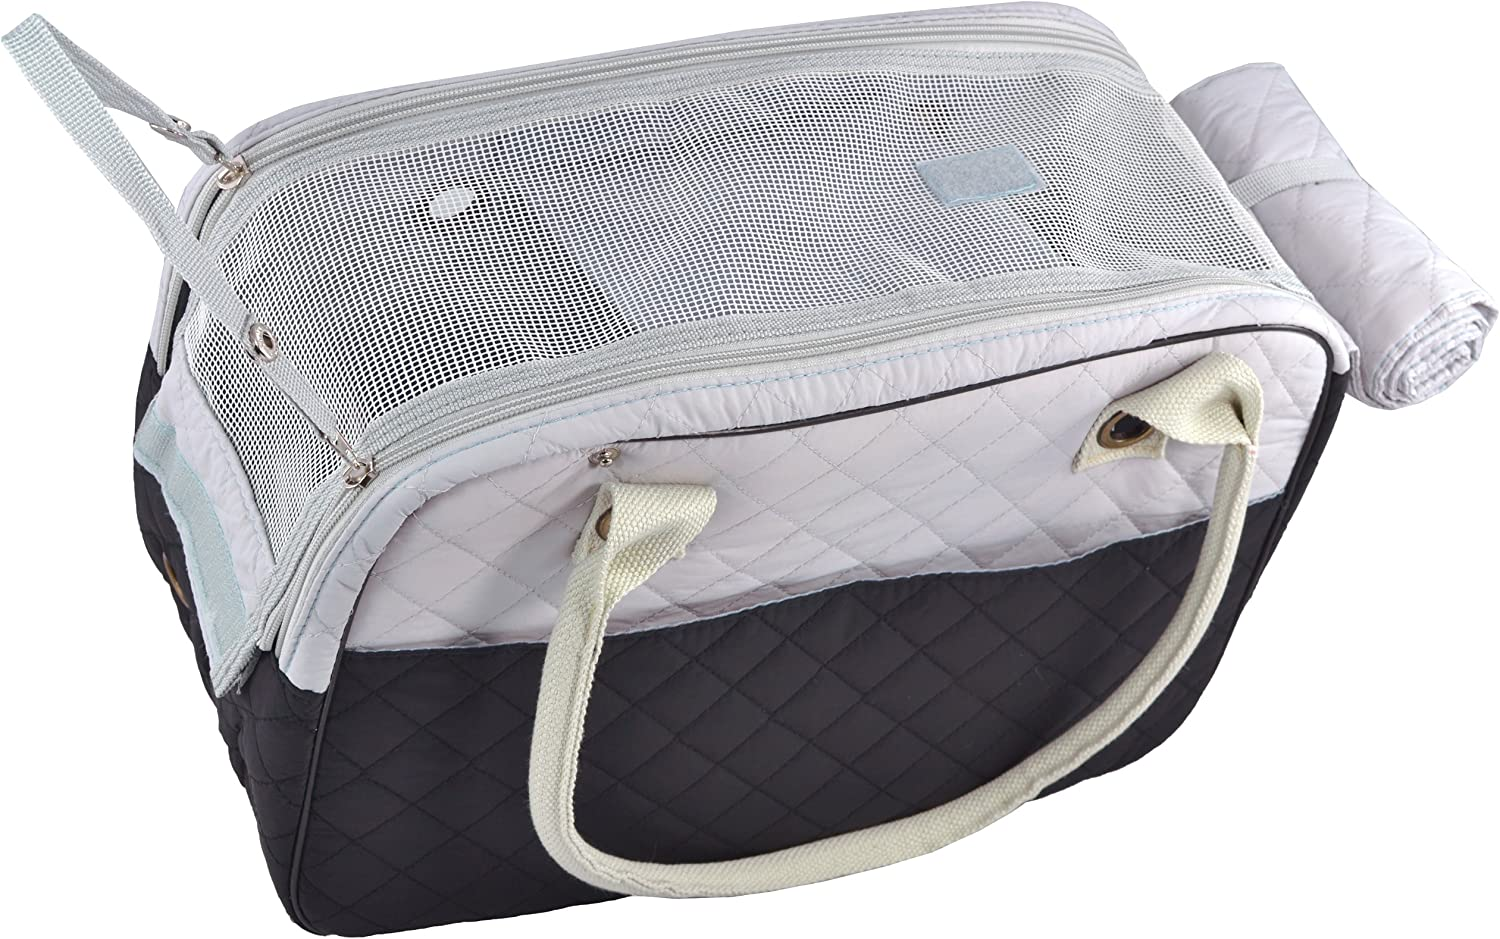 MG Collection Stylish 2 Tone Quilted Soft Sided Travel Dog and Cat Pet Carrier Tote Hand Bag Black